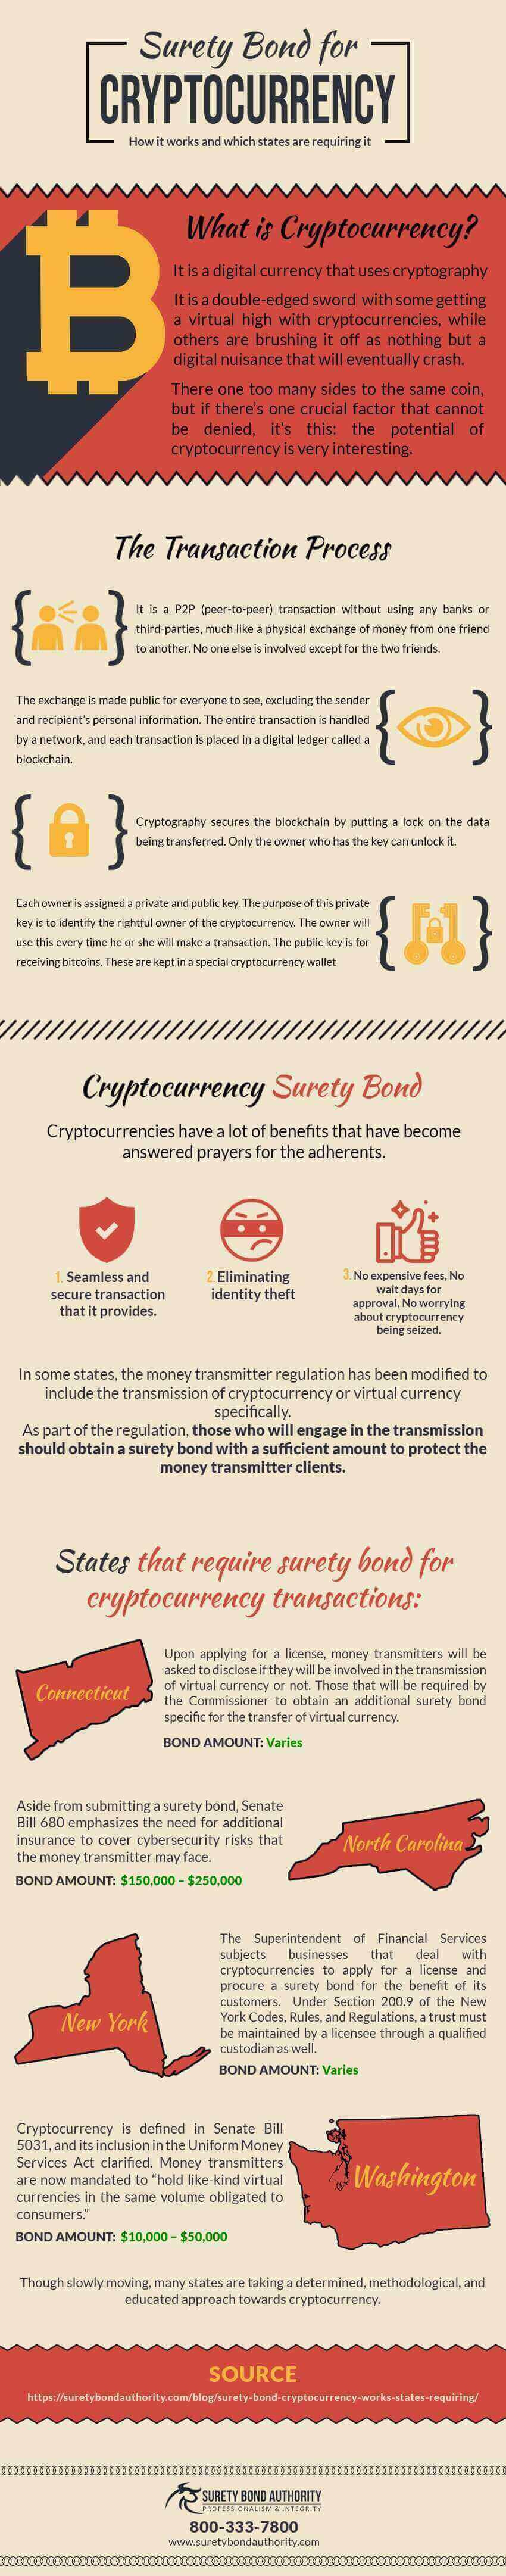 Surety Bond for Cryptocurrency Infographic